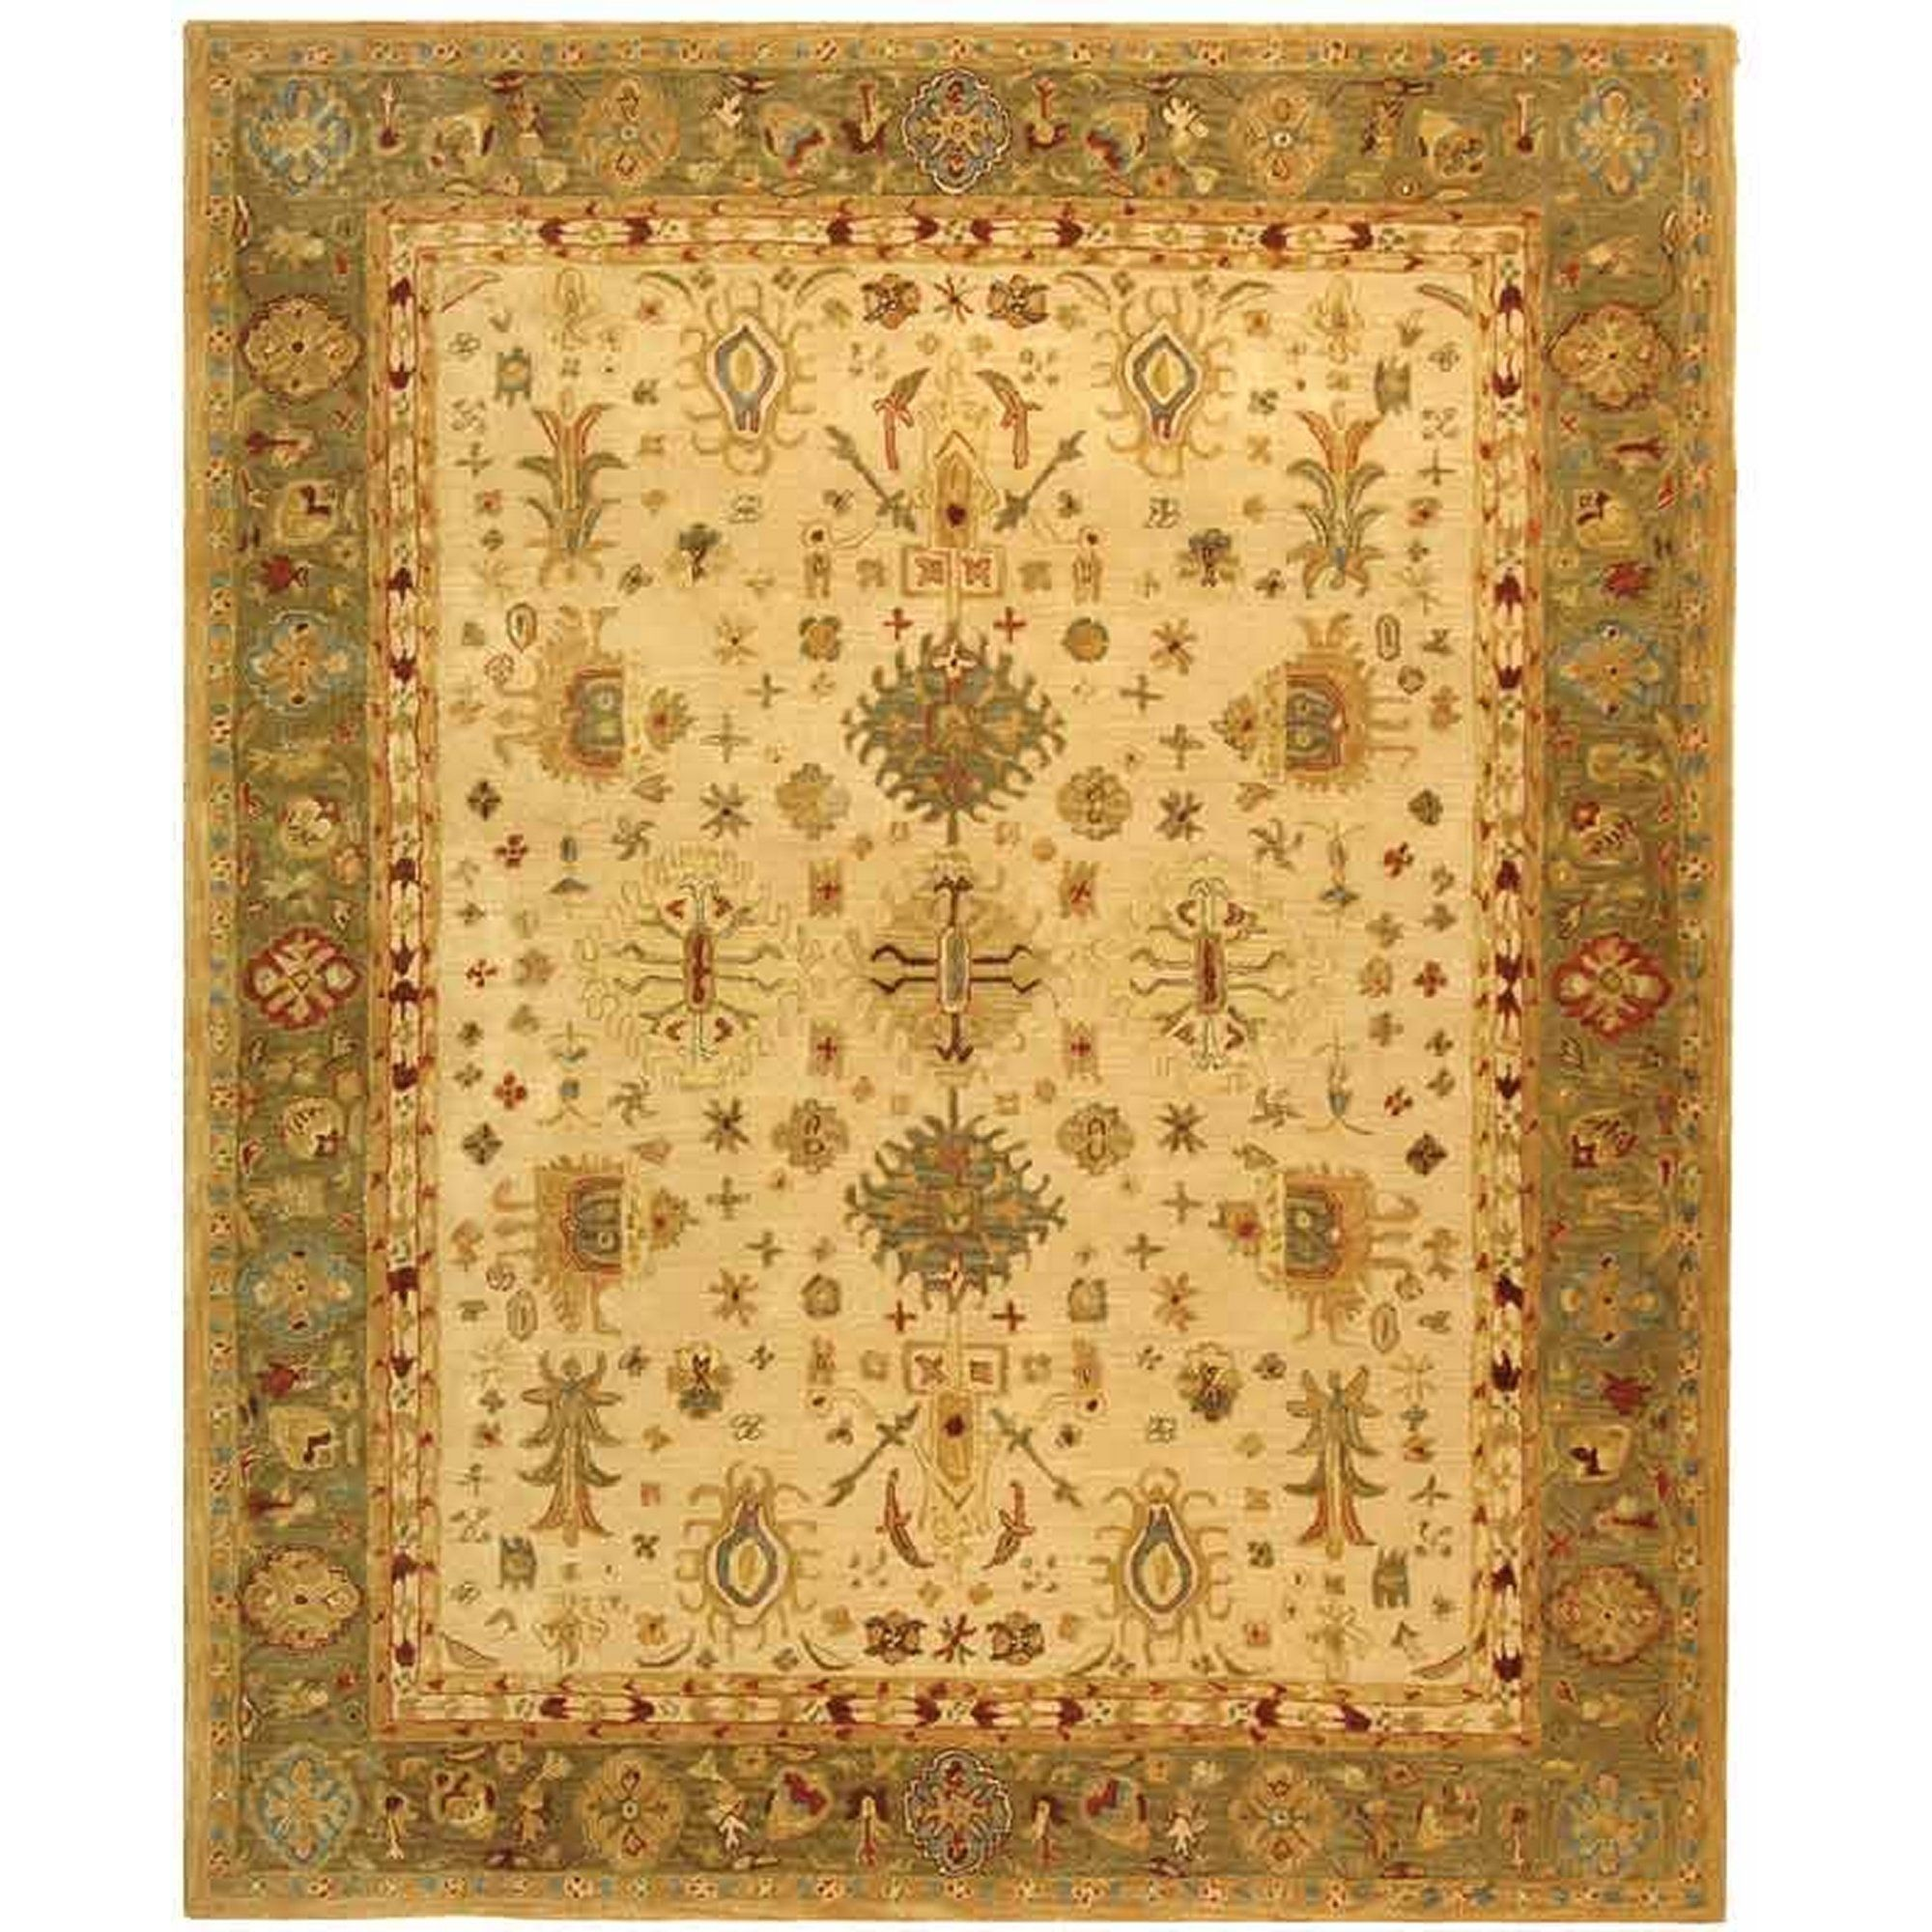 Amazon Com Safavieh Anatolia Collection An547b Handmade Ivory Hand Spun Wool Area Rug 9 Feet By 12 Feet Wool Area Rugs Handmade Wool Rugs Handmade Area Rugs